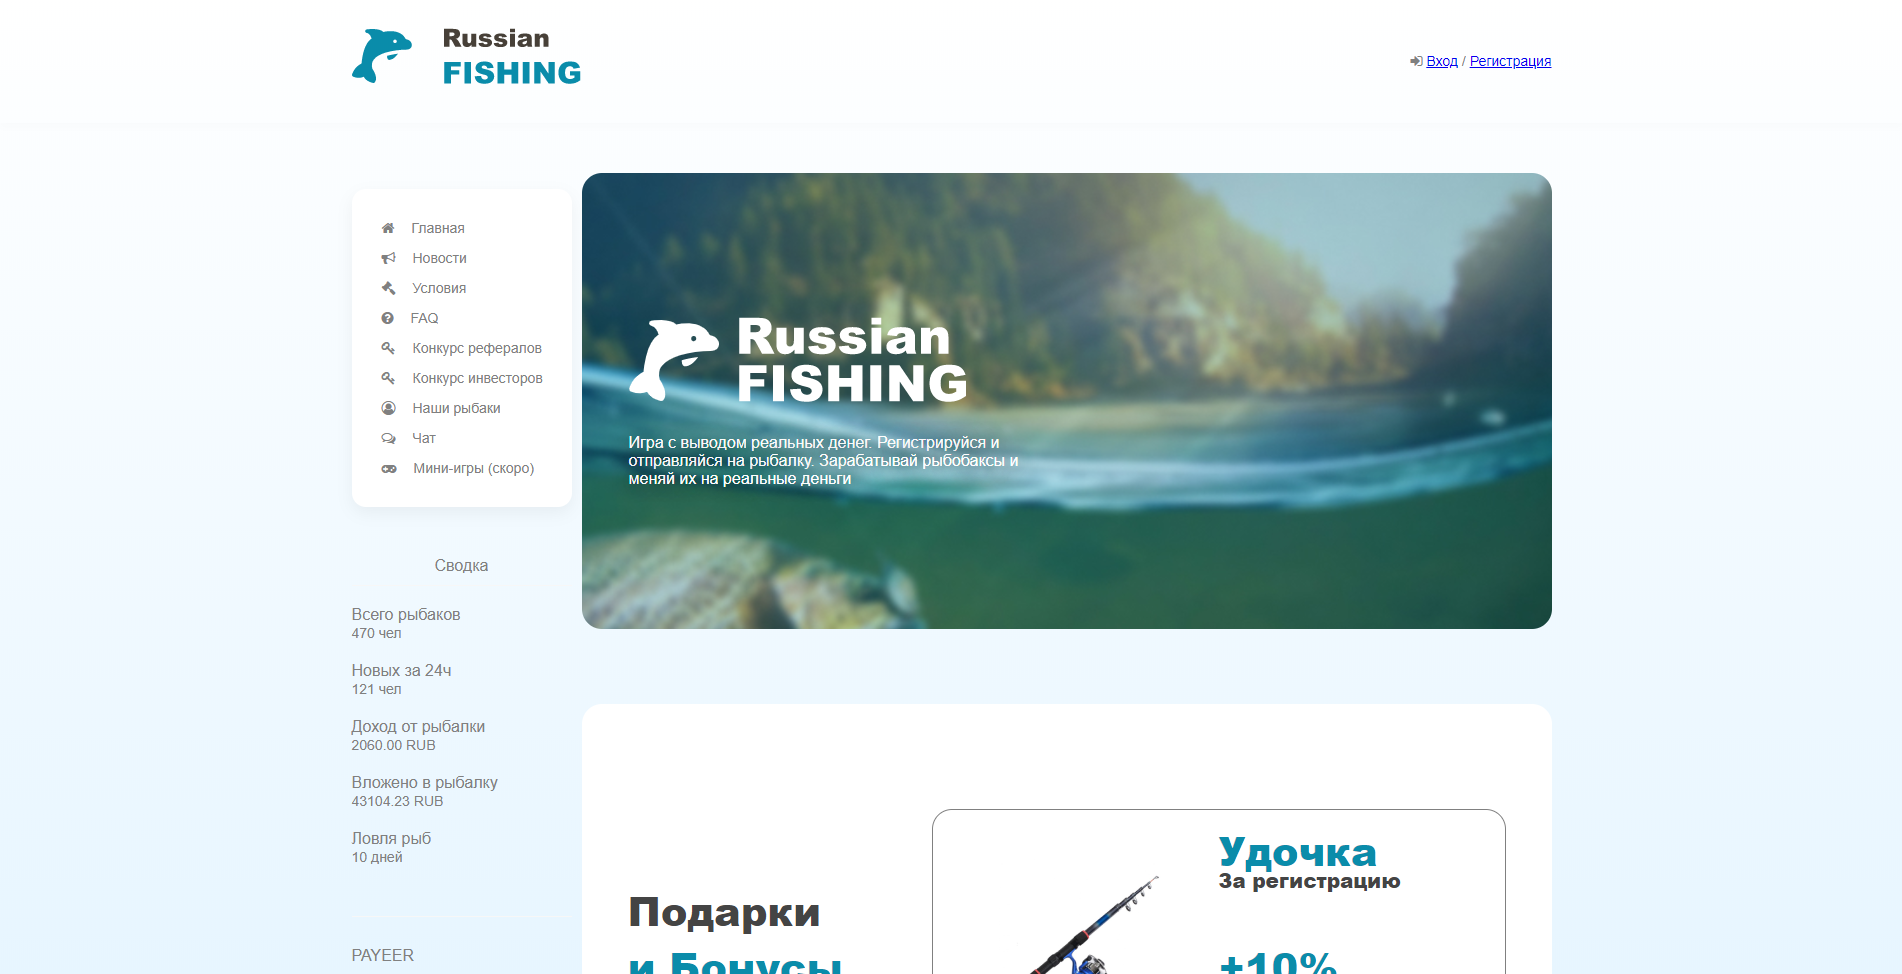 Russian Fishing - swanlake.online